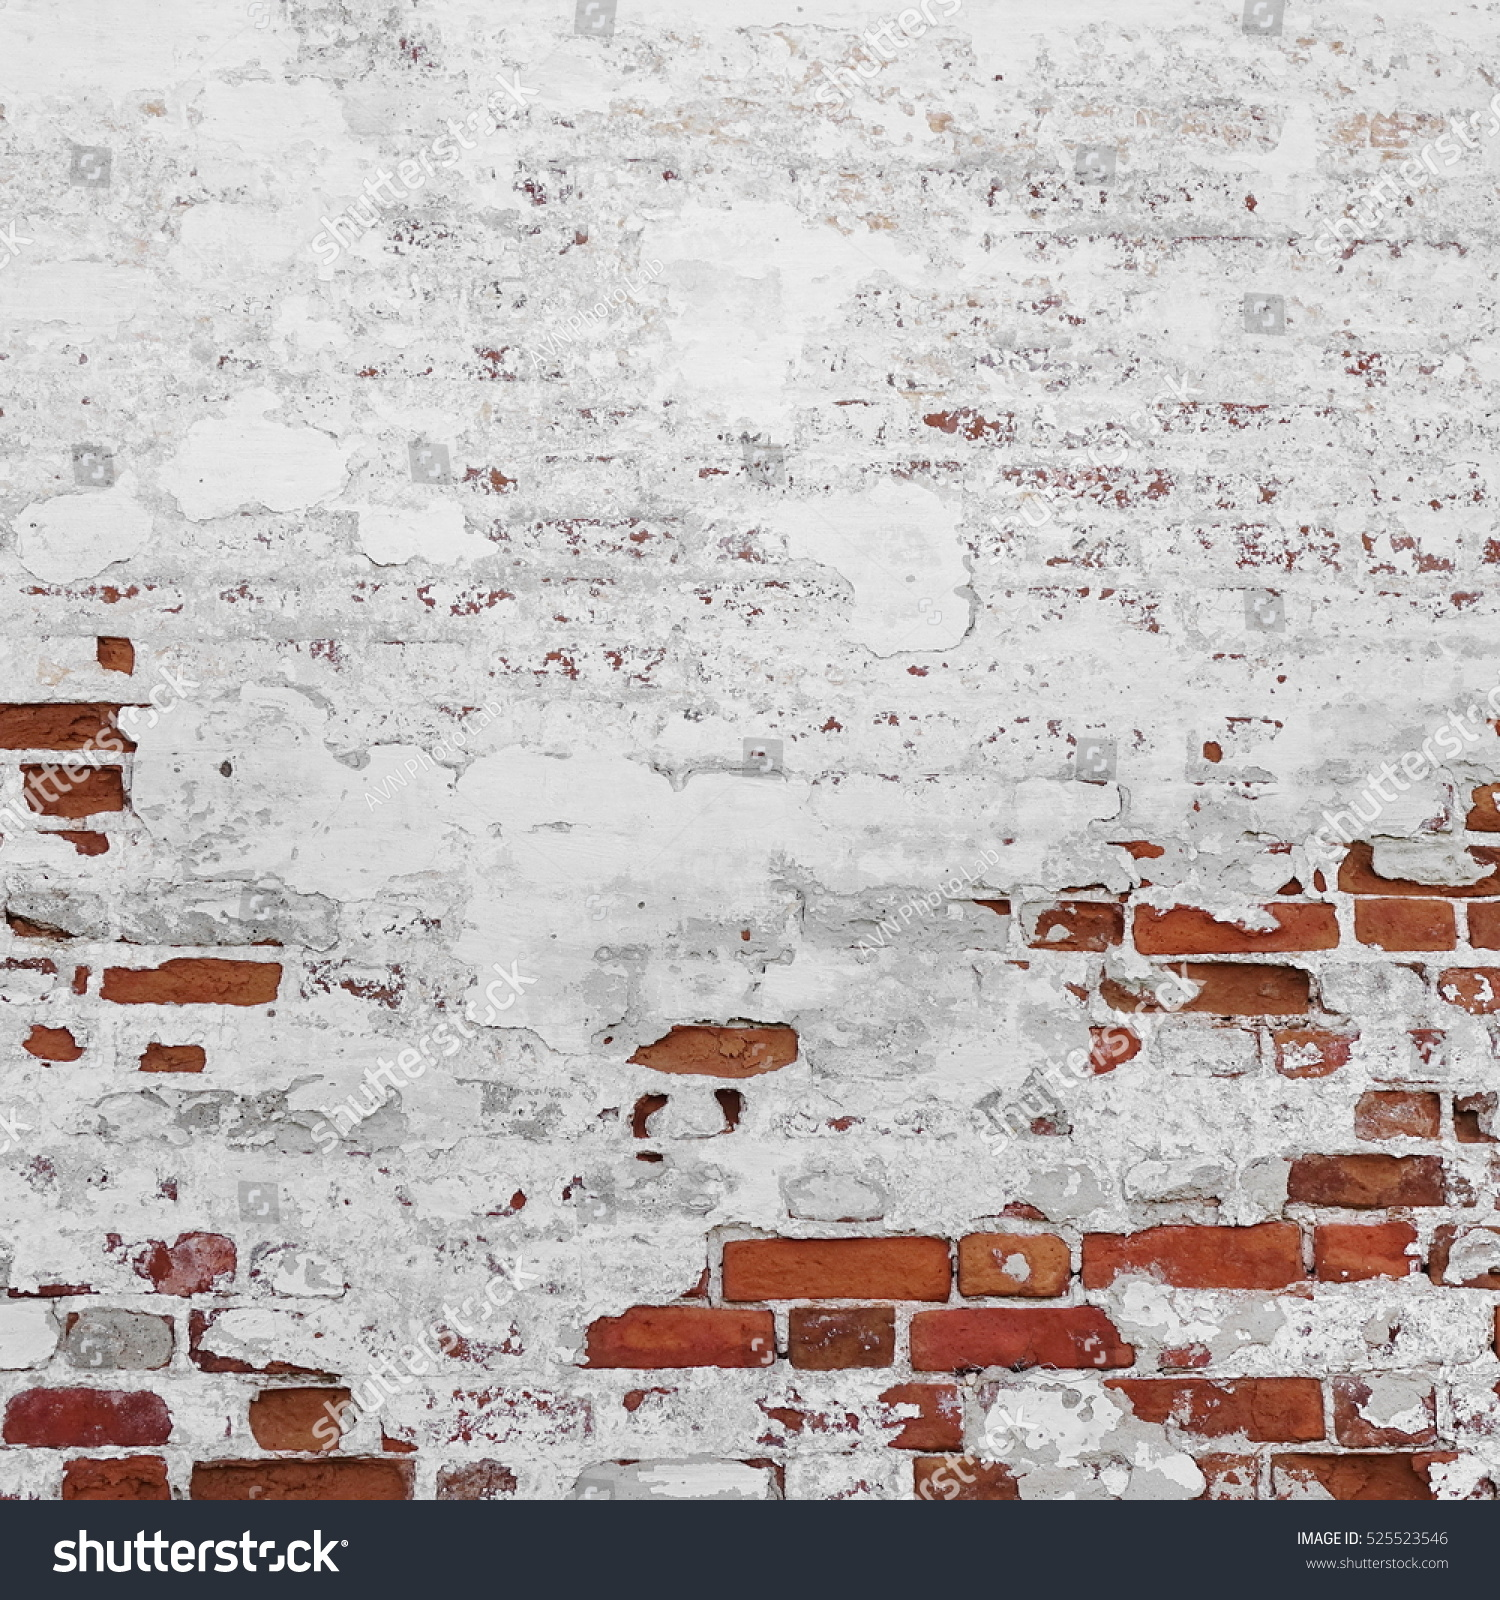 Hourwall Classicbrick Vintagewhite: Abstract Red White Stonewall Urban Texture Stock Photo